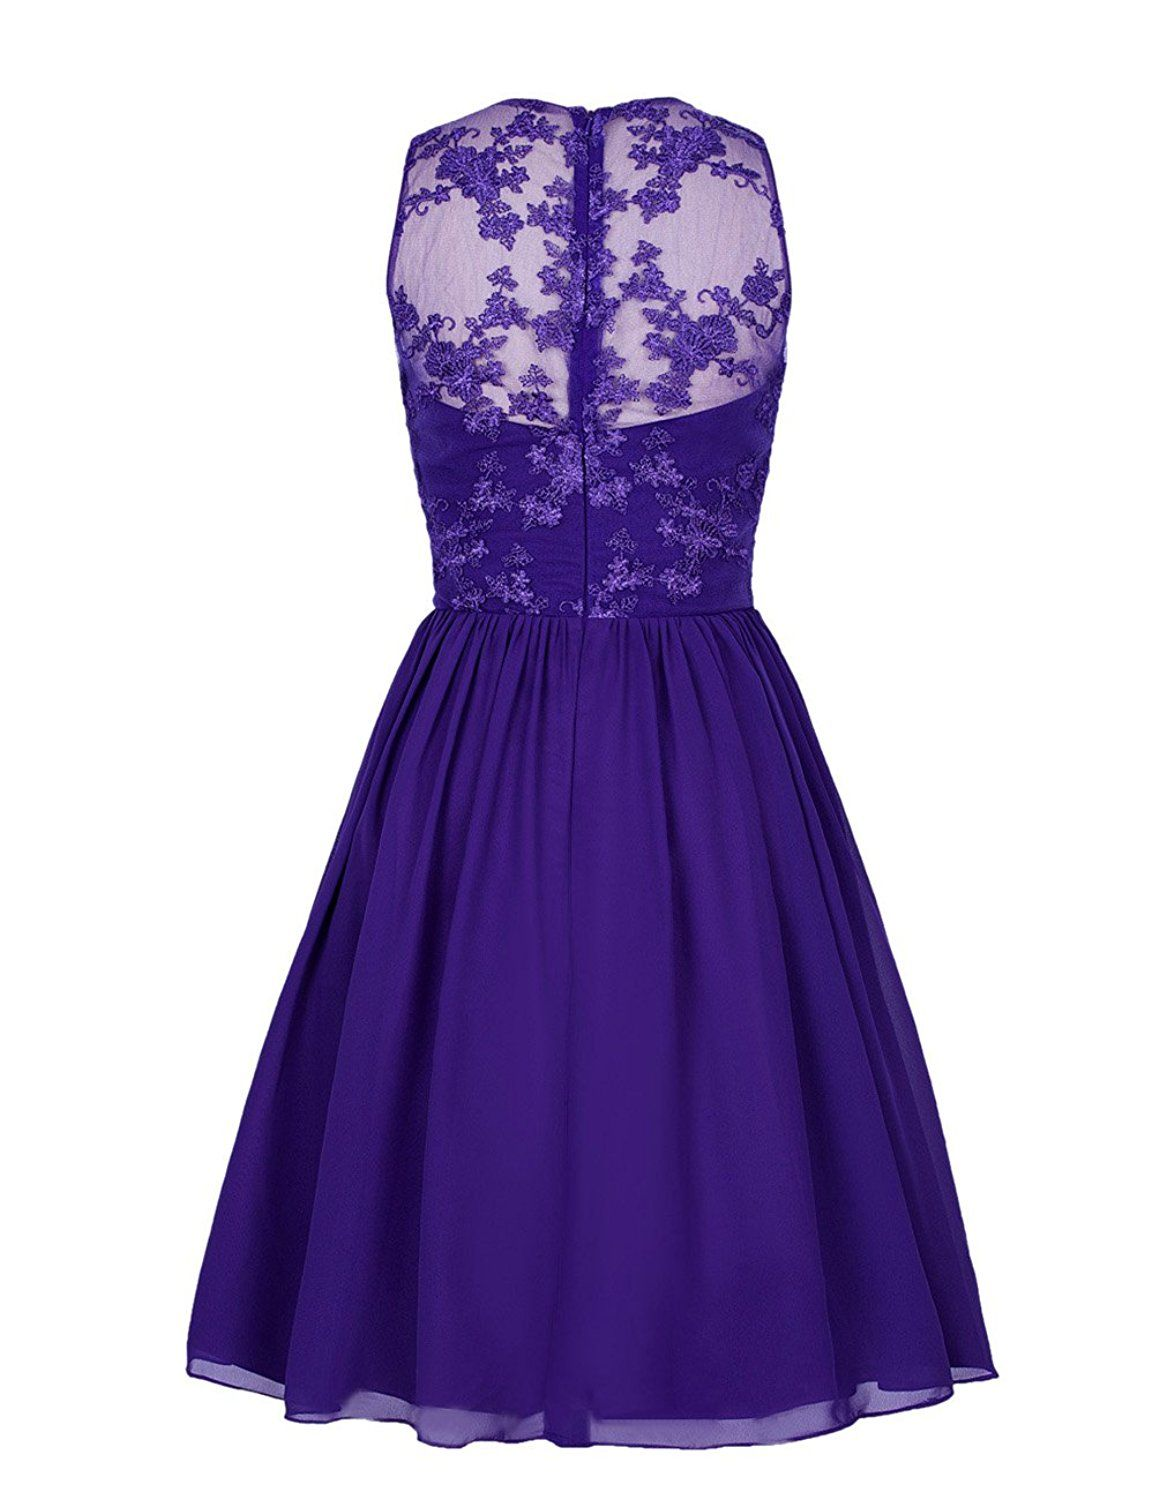 Tidetell 2016 Tidetell Bridesmaid Short Dress Mesh Lace 1950s Cocktail Party Dress Lavender Size 2